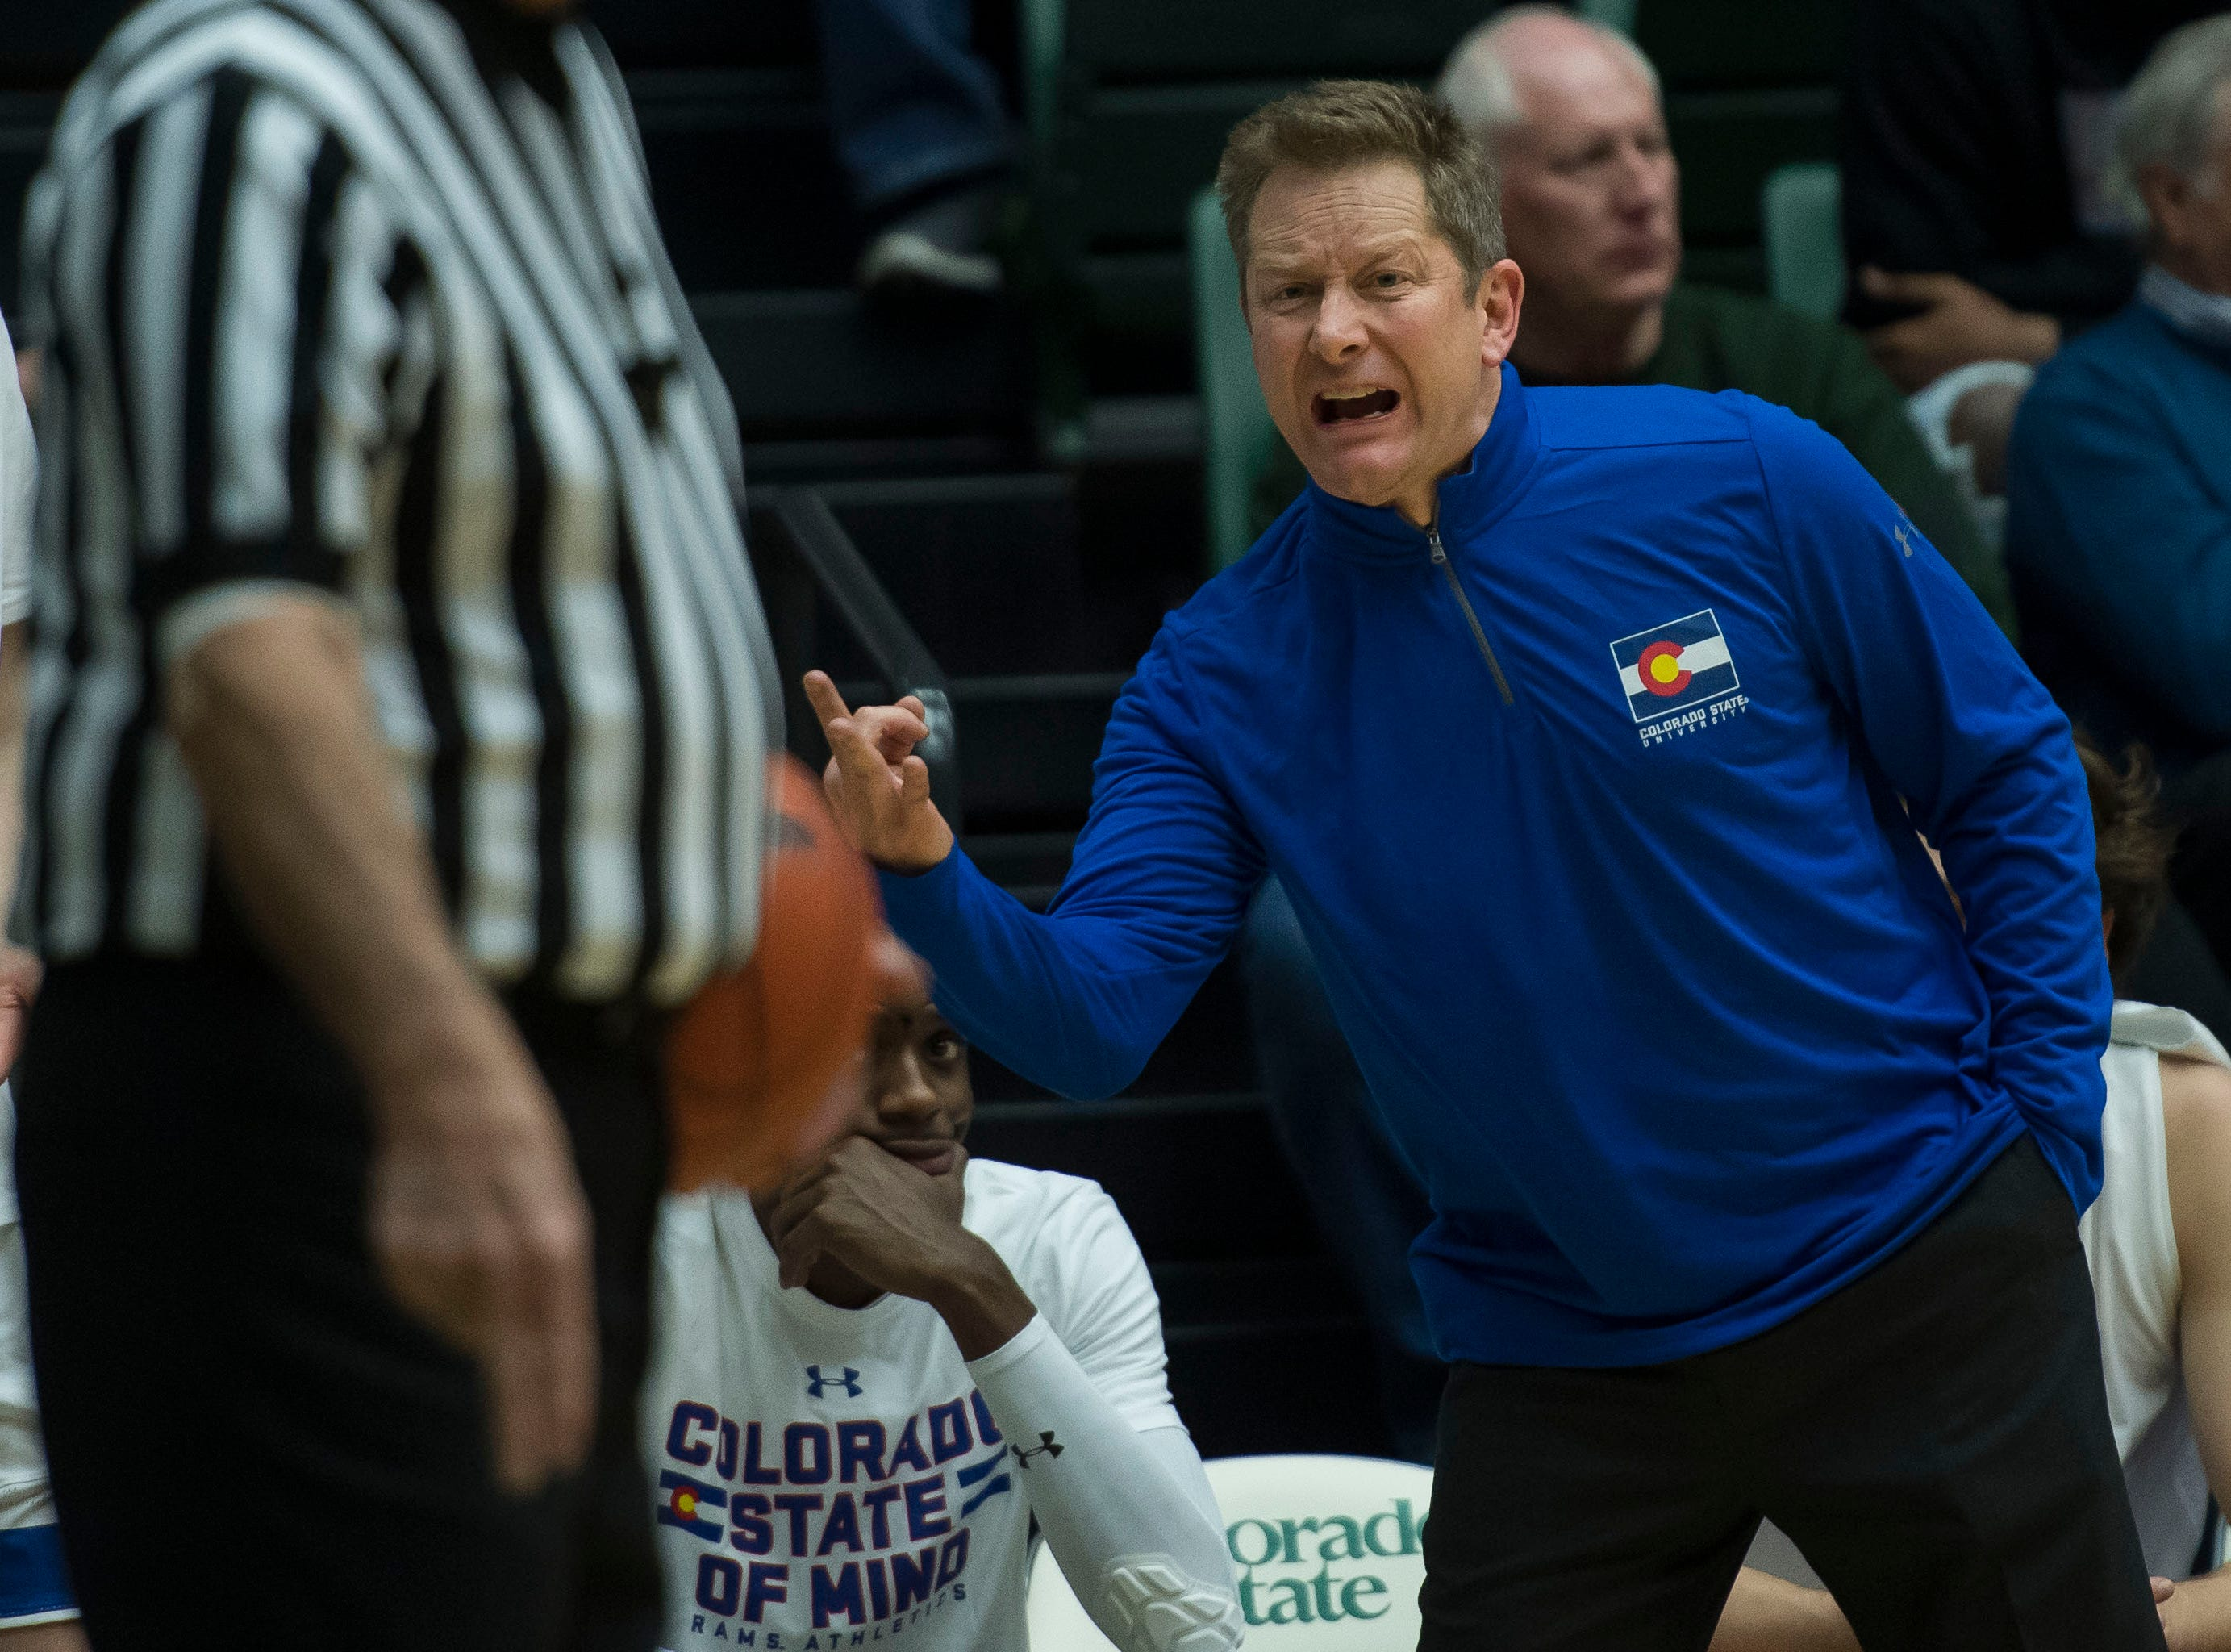 Colorado State University head coach Niko Medved talks to an official during a game against Nevada on Wednesday, Feb. 6, 2019, at Moby Arena Fort Collins, Colo.